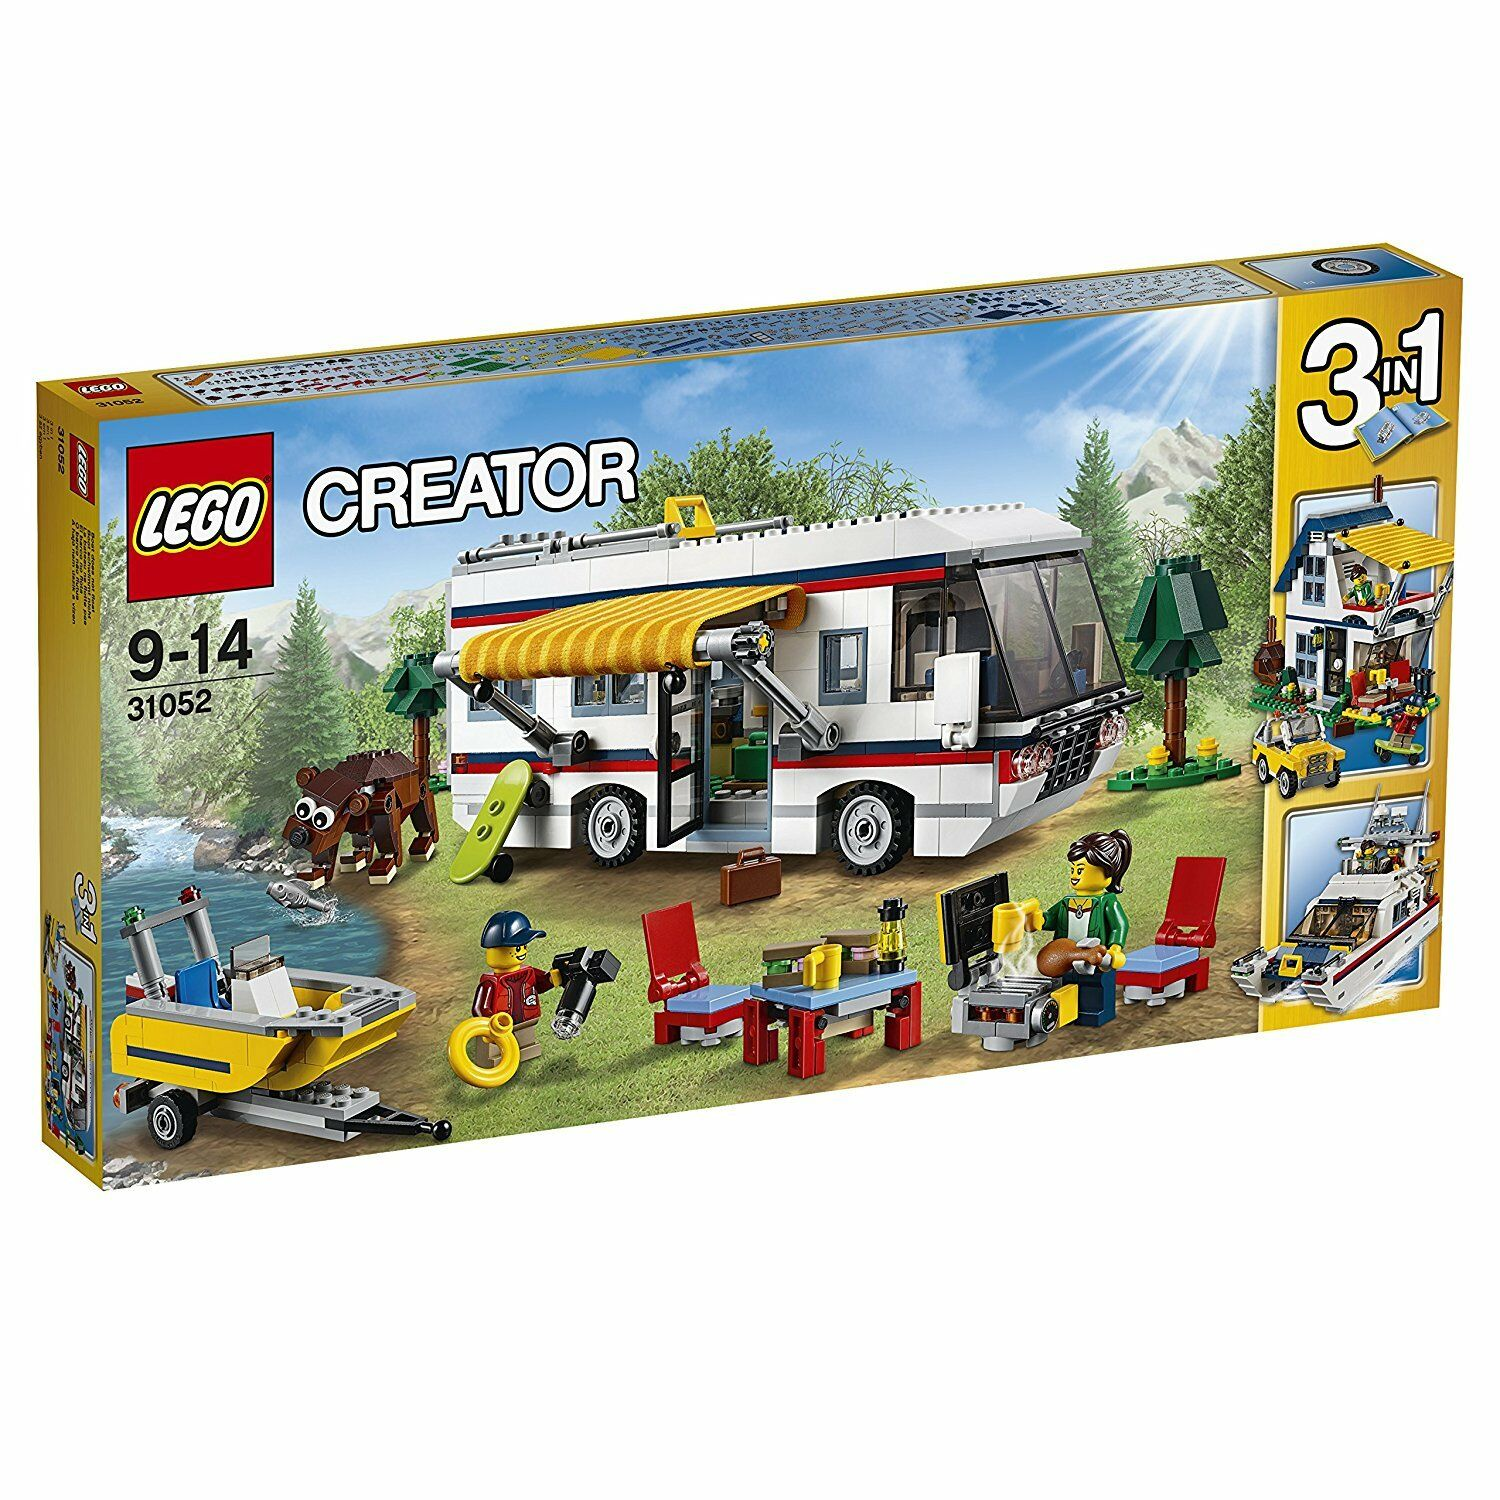 LEGO Creator Vacation Getaways 31052 BRAND NEW Sealed Box FREE Signed Delivery